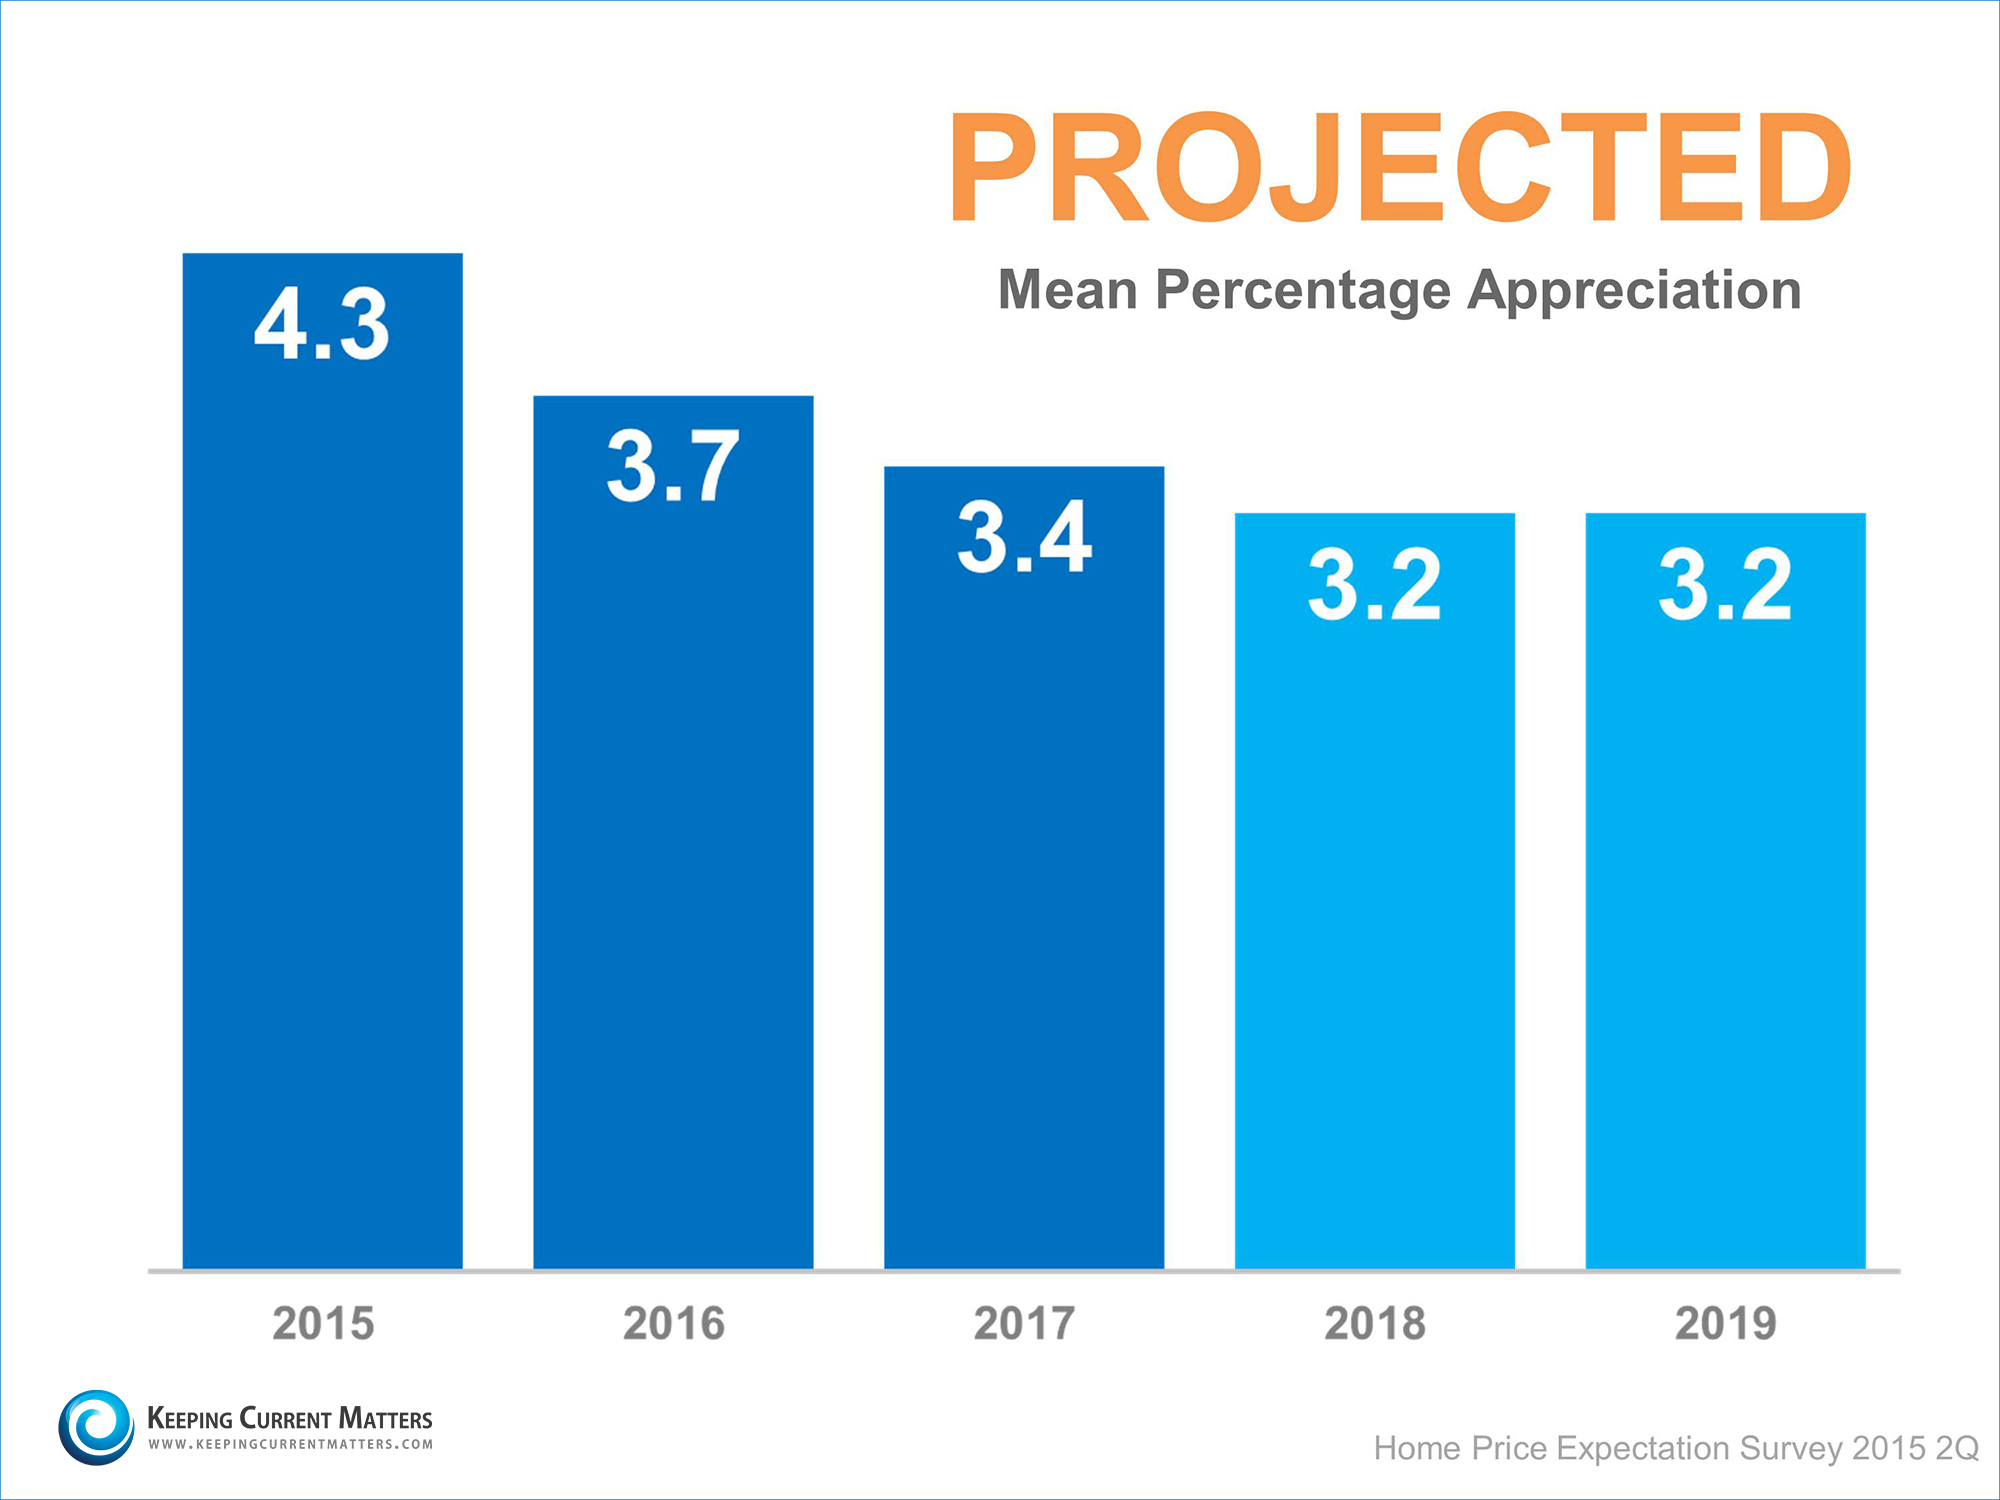 Projected Mean Percentage Appreciation | Keeping Current Matters